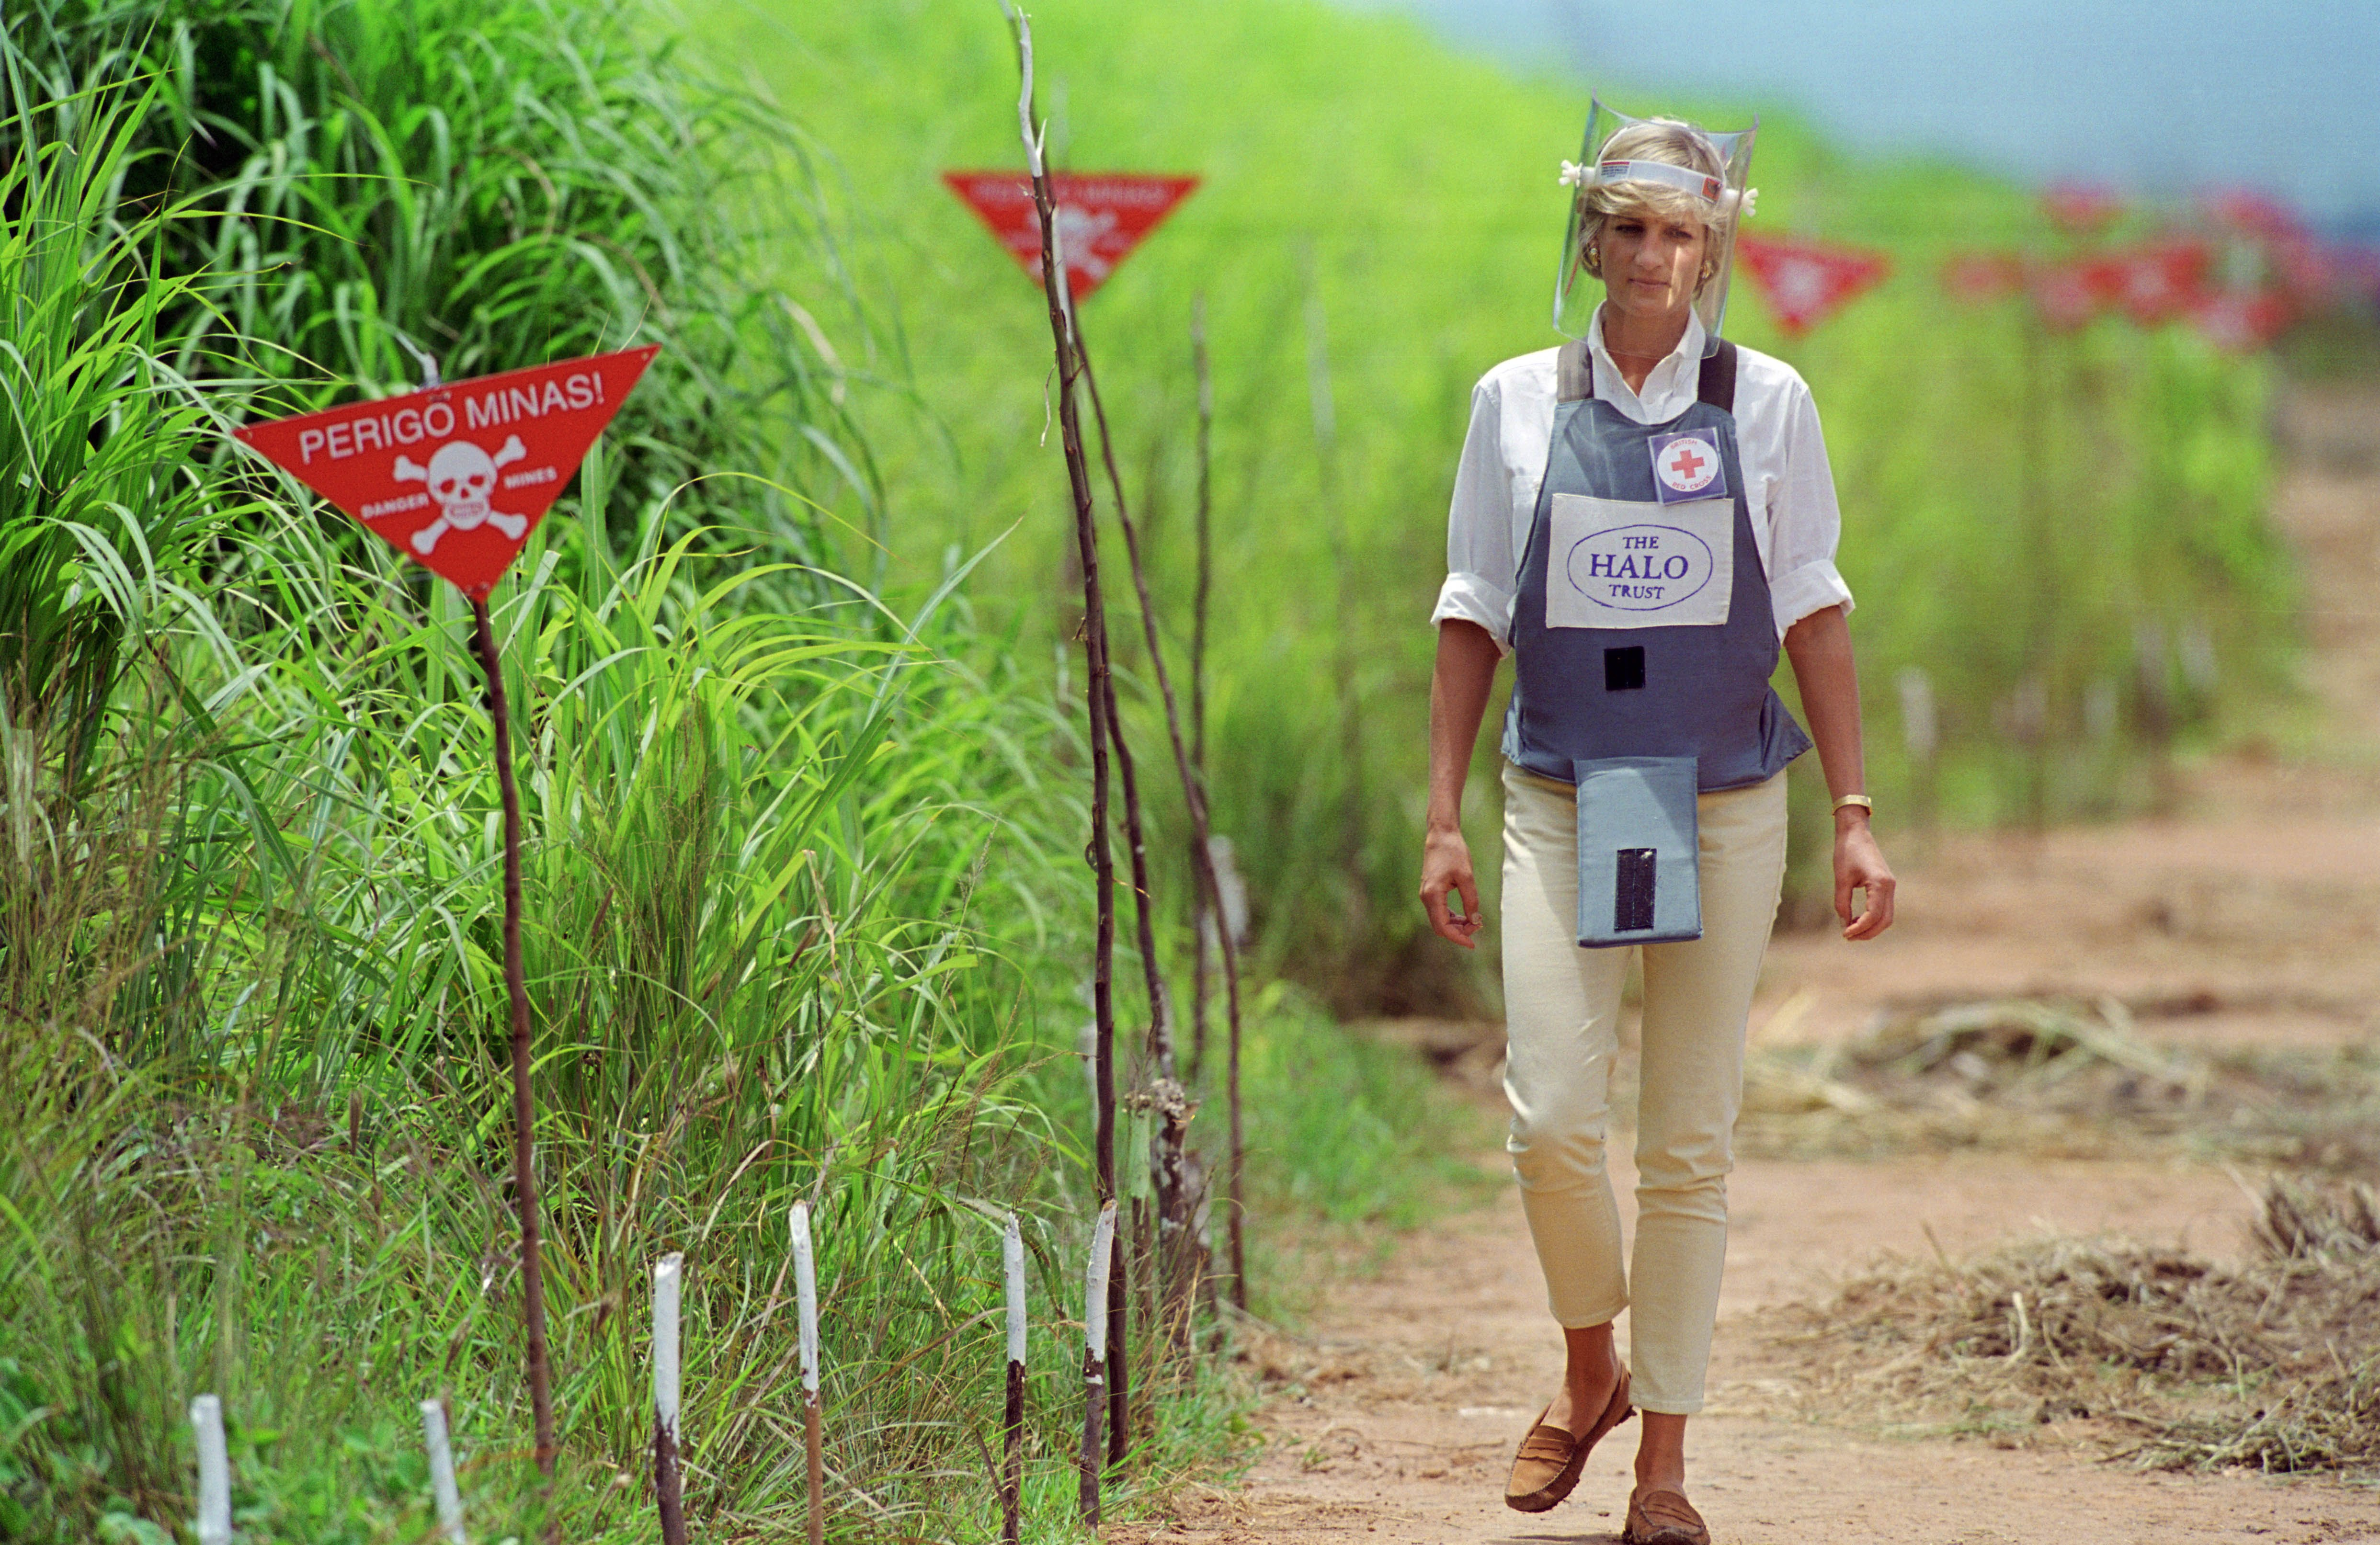 ANGOLA - JANUARY 05:  Diana, Princess of Wales wearing protective body armour and a visor visits a landmine minefield being cleared by the charity Halo in Huambo, Angola  (Photo by Tim Graham/Getty Images)